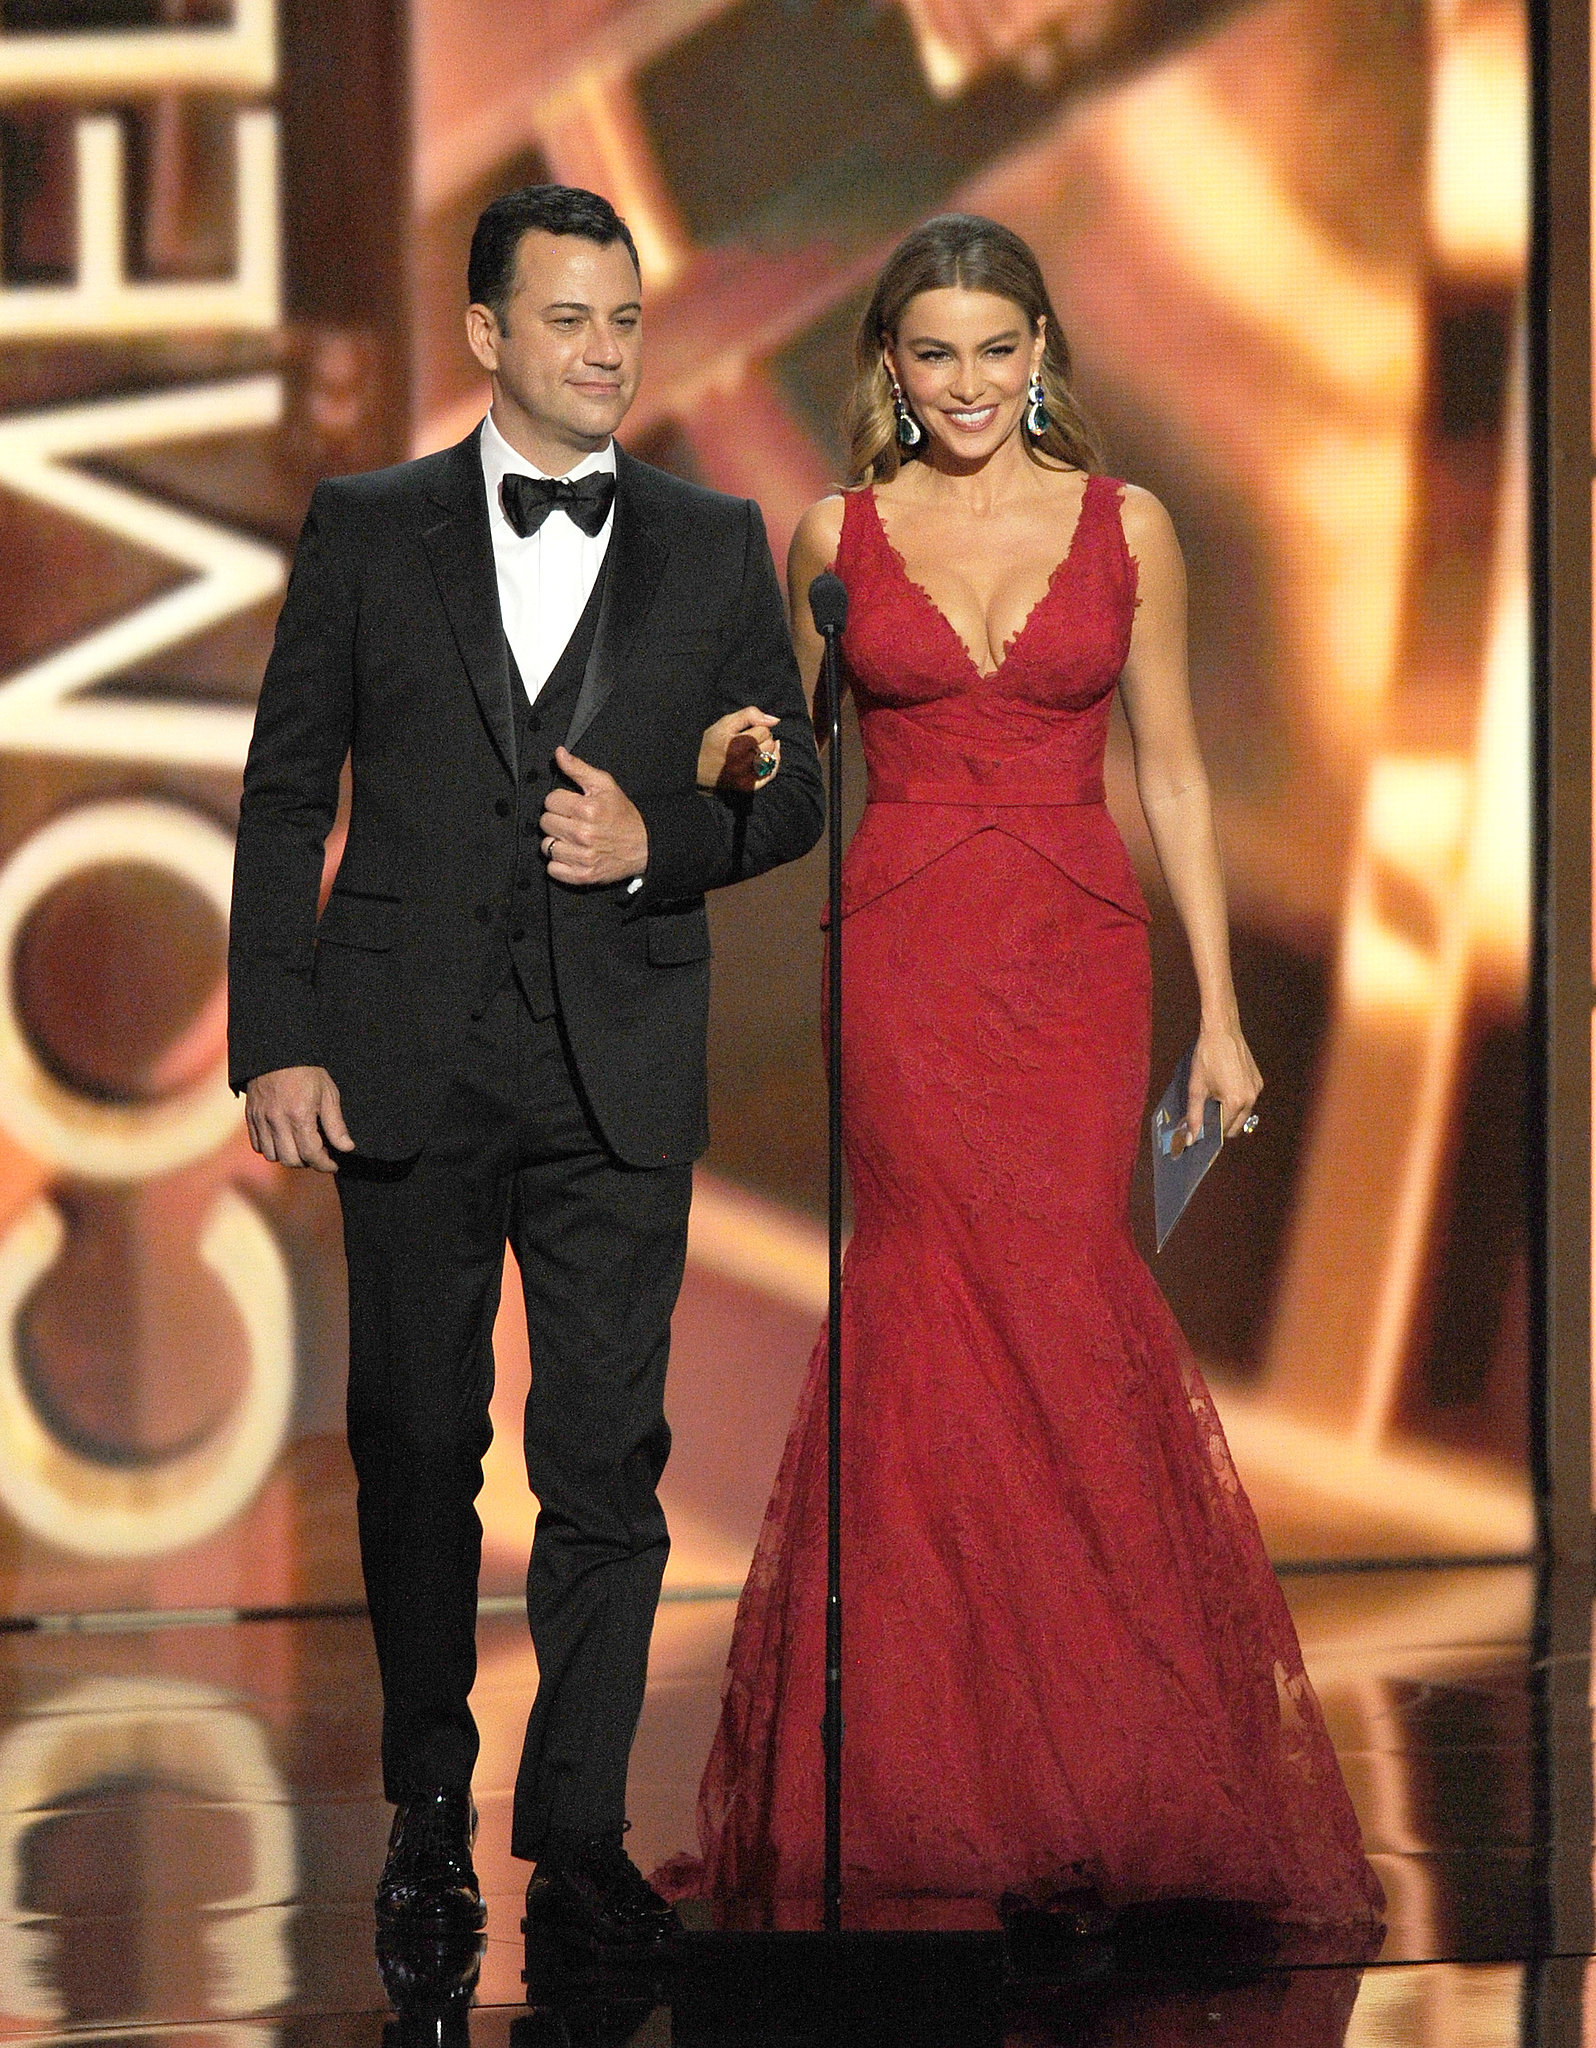 jimmy kimmel and sofia vergara presented together at the